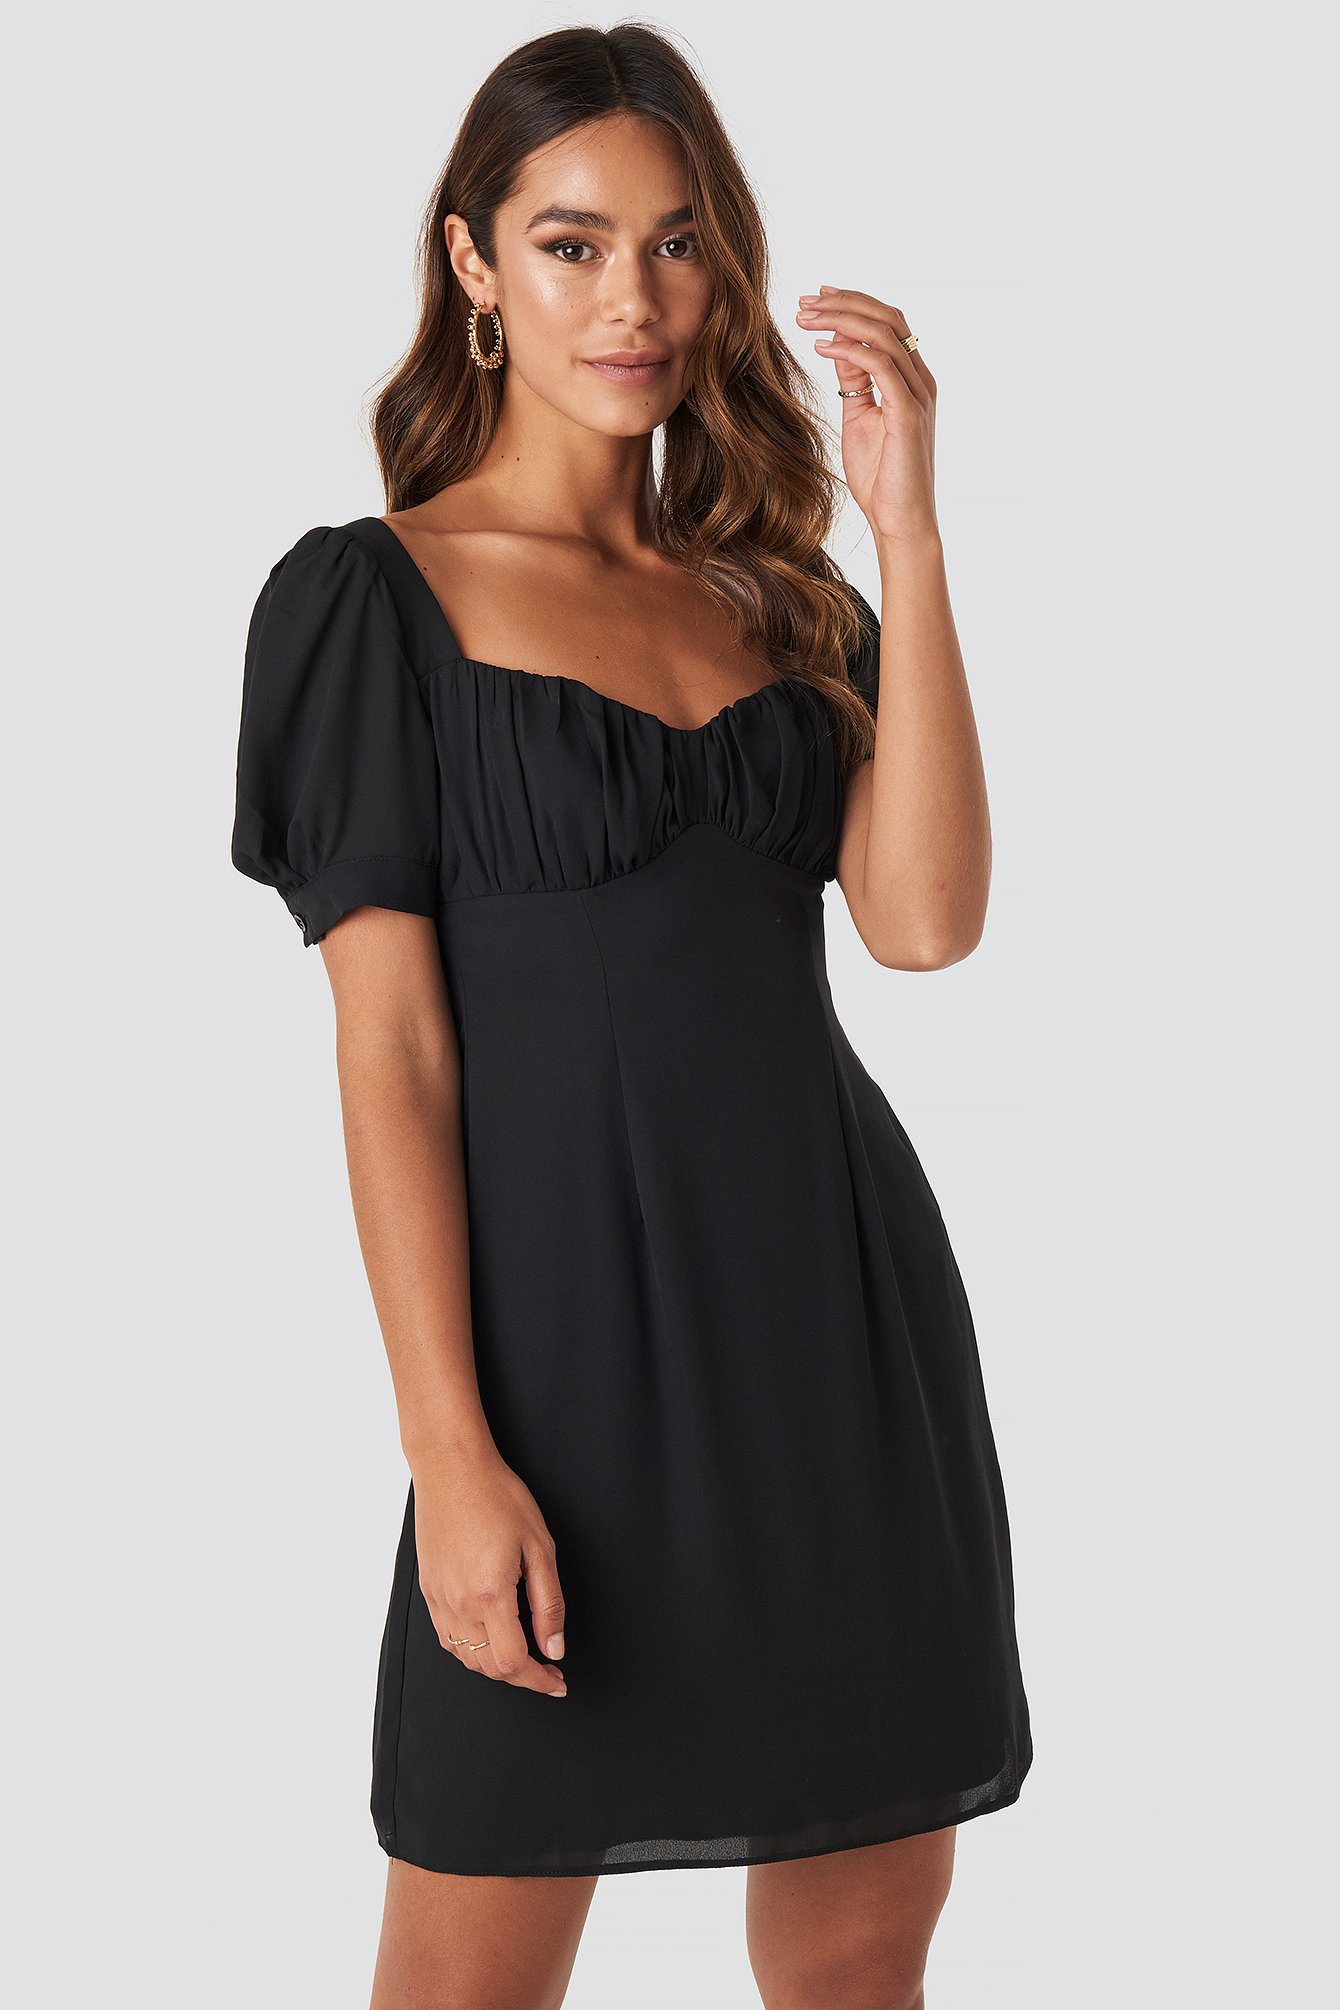 Black Bust Puff Sleeve Mini Dress